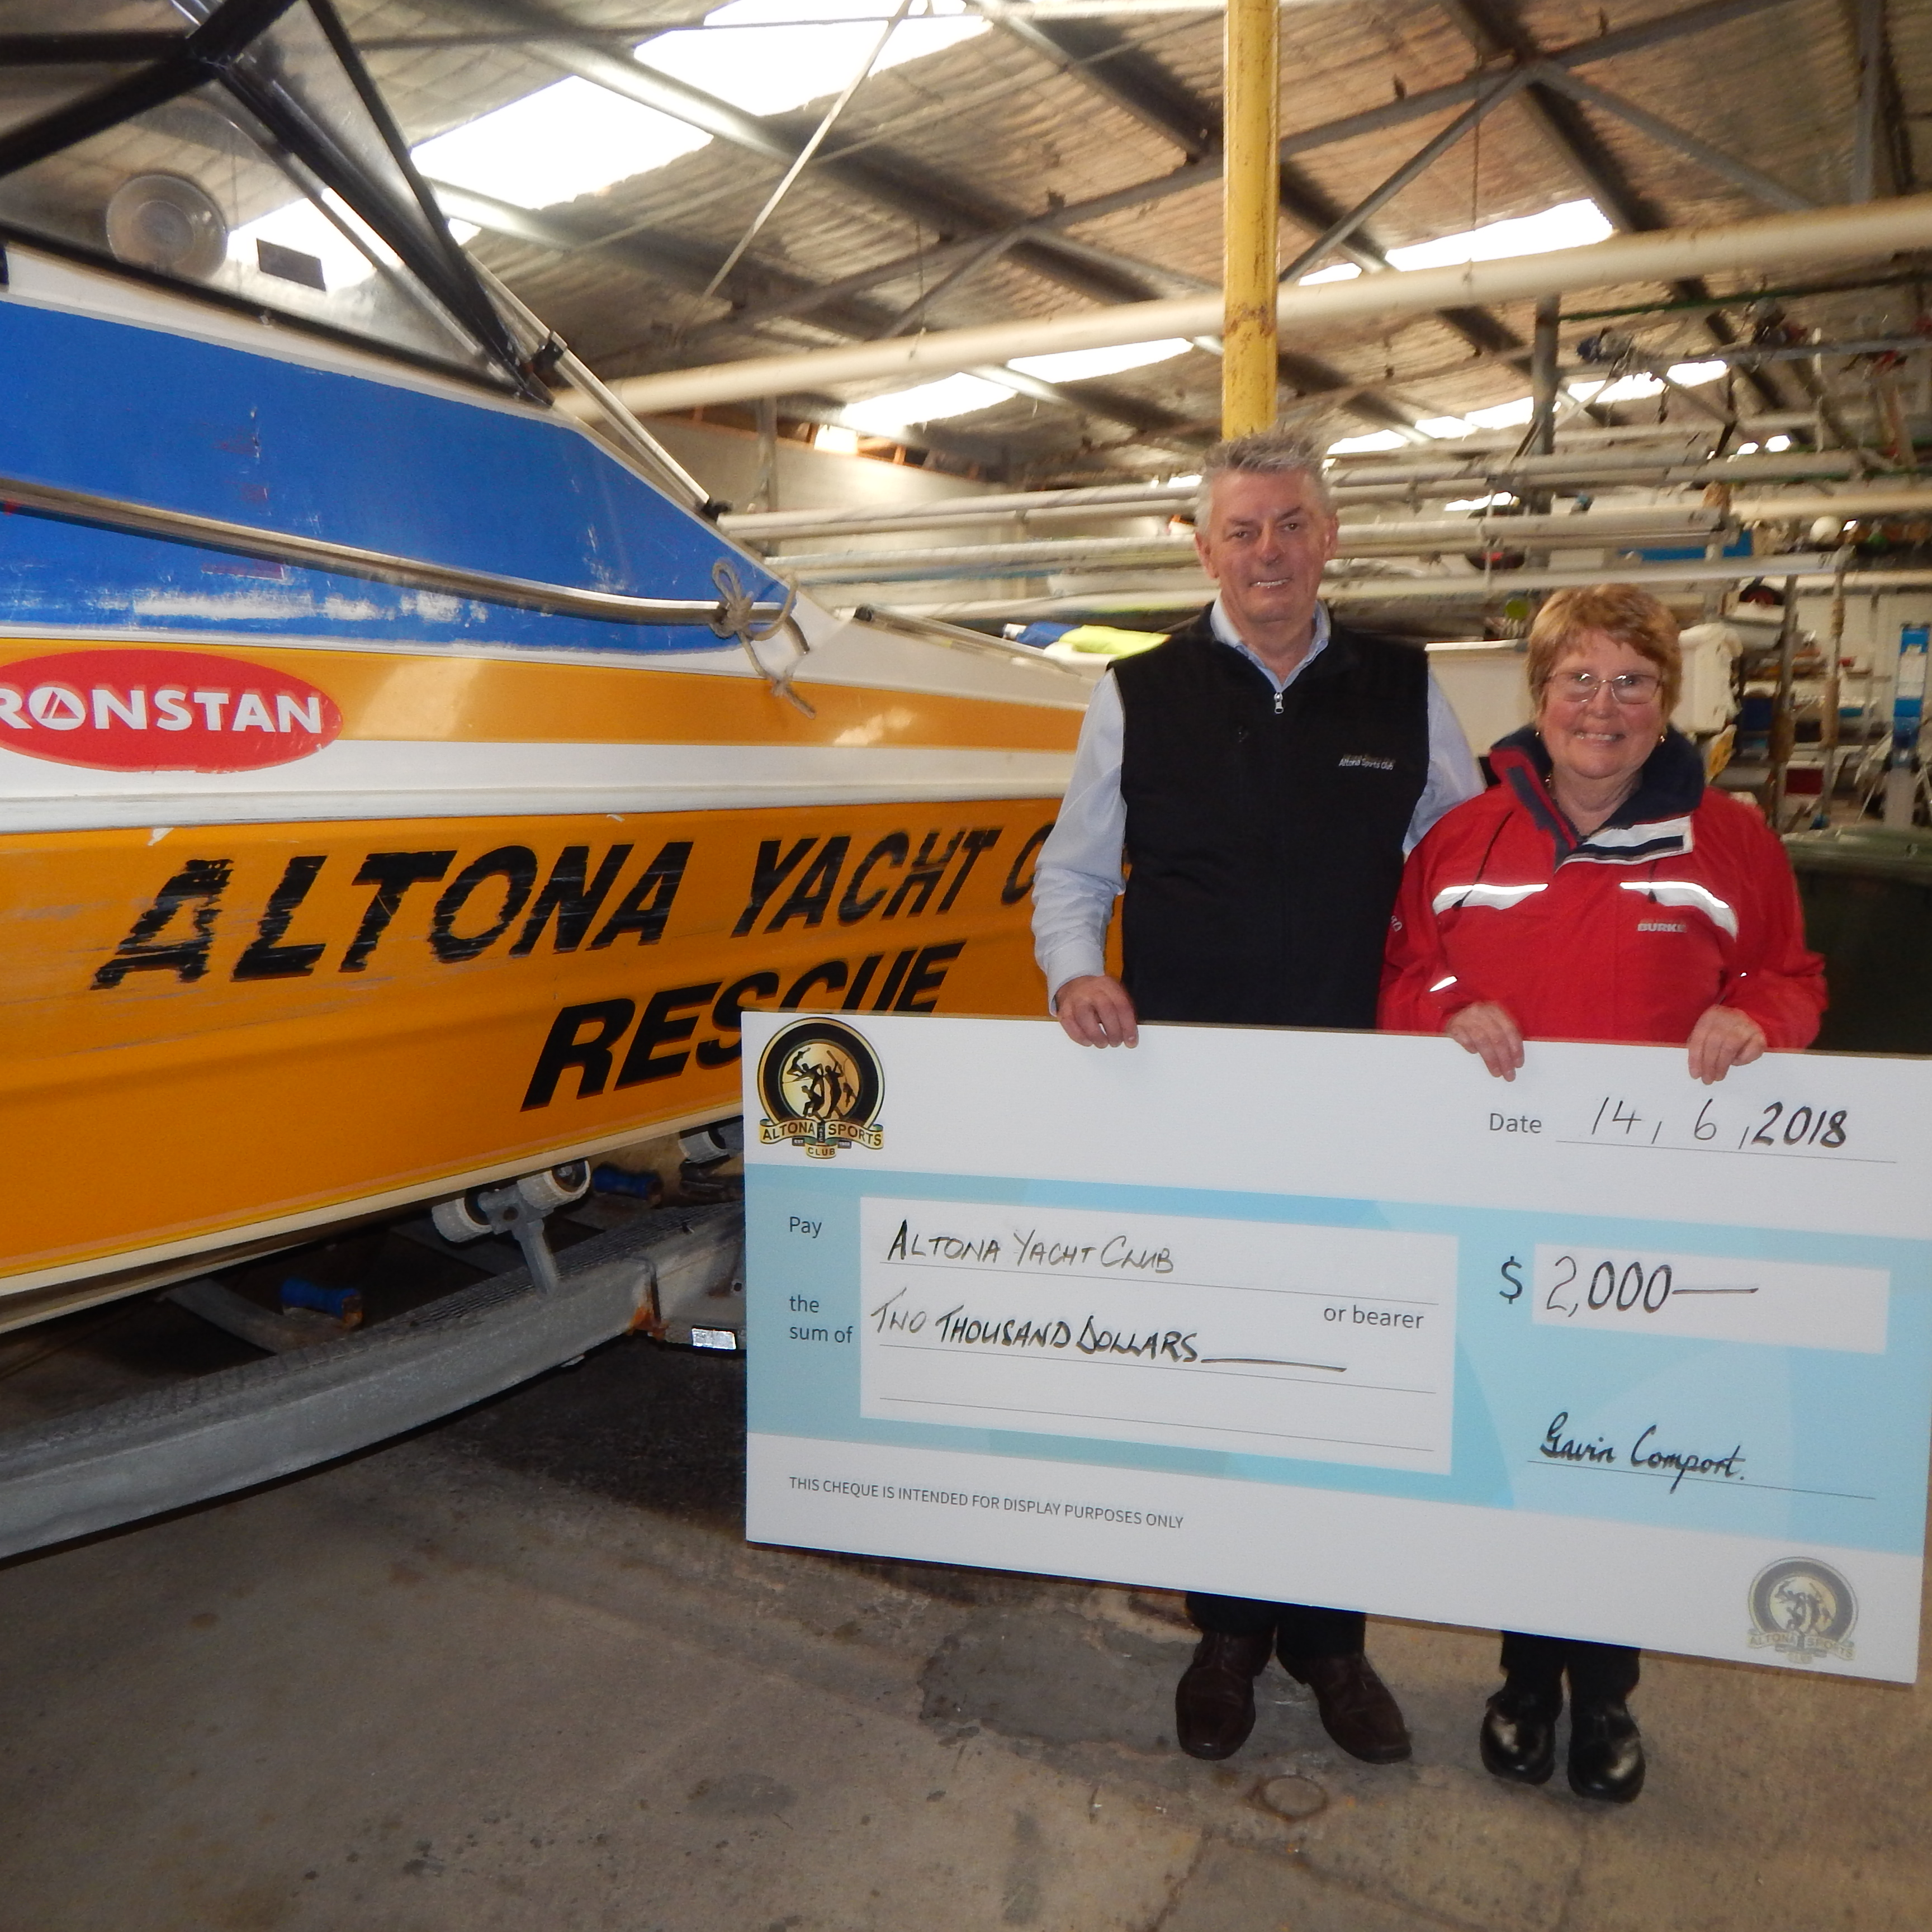 ALTONA YACHT CLUB SPONSORSHIP